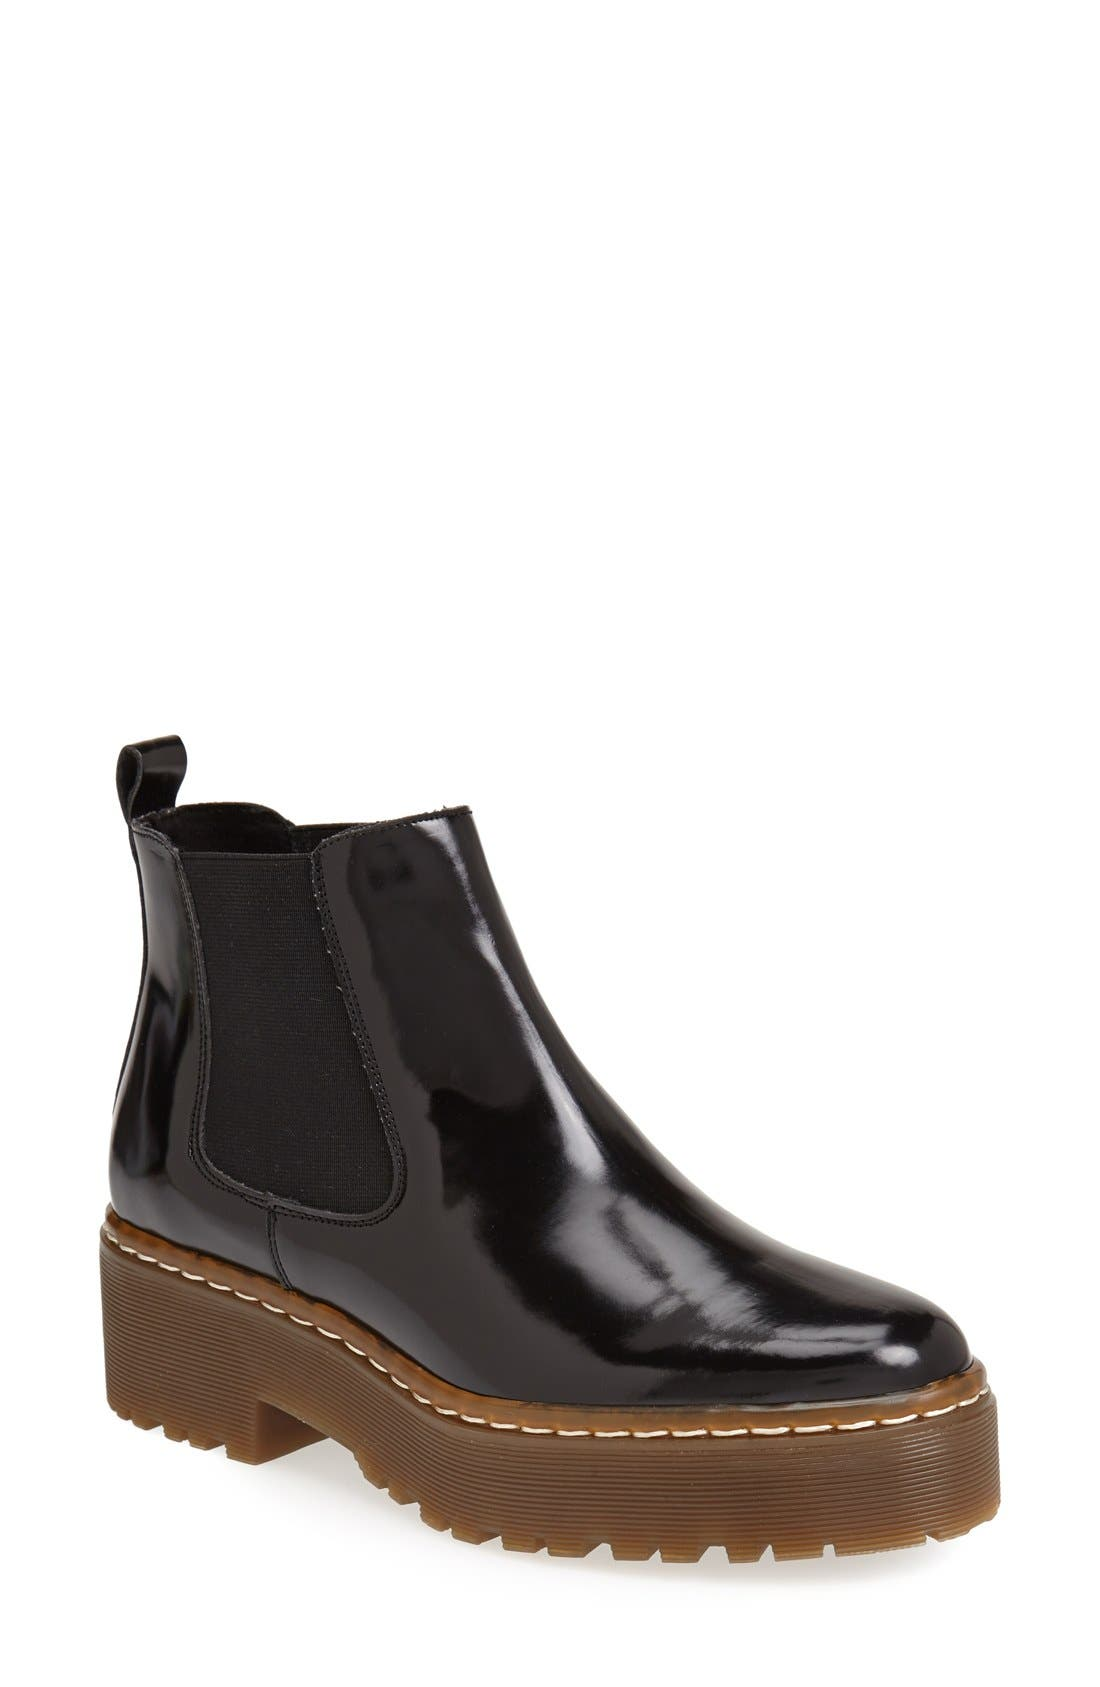 Main Image - Topshop 'Absolutely' Chelsea Boots (Women)